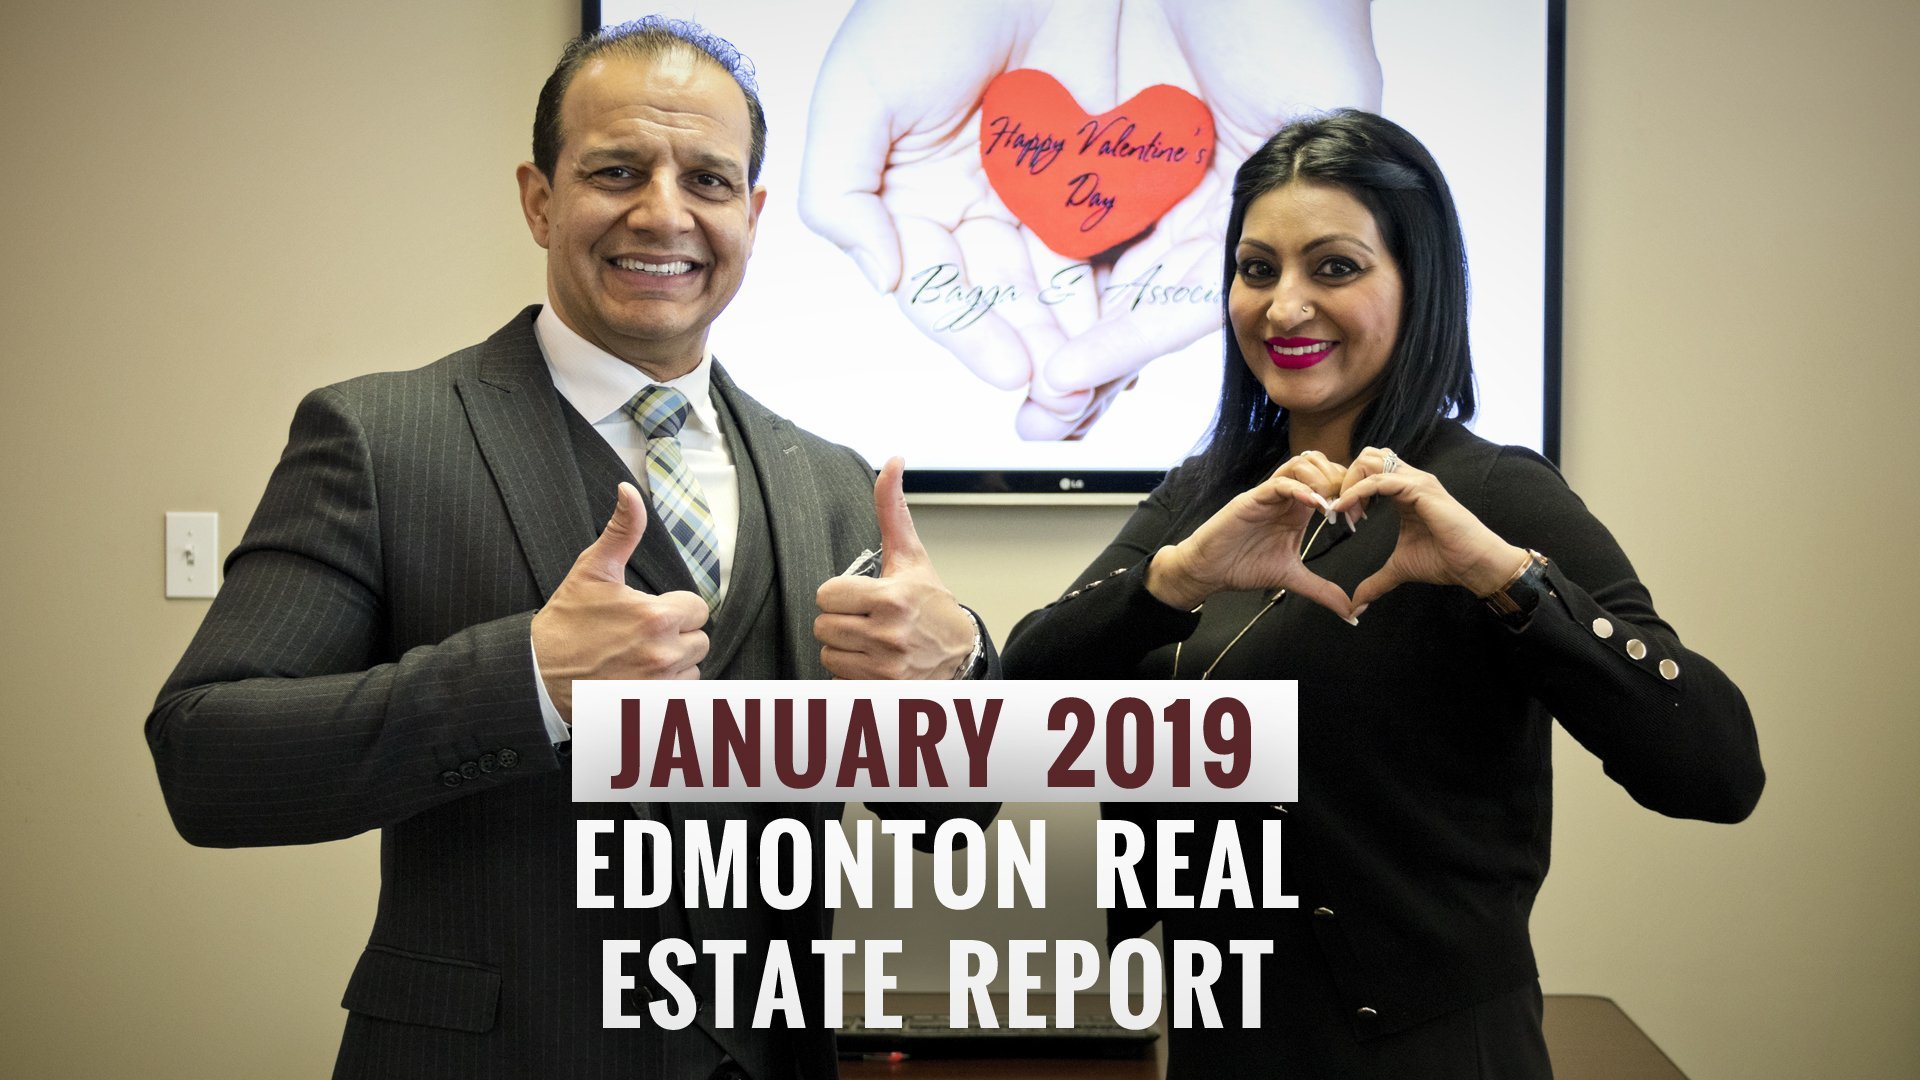 February 2019 Edmonton Market Report